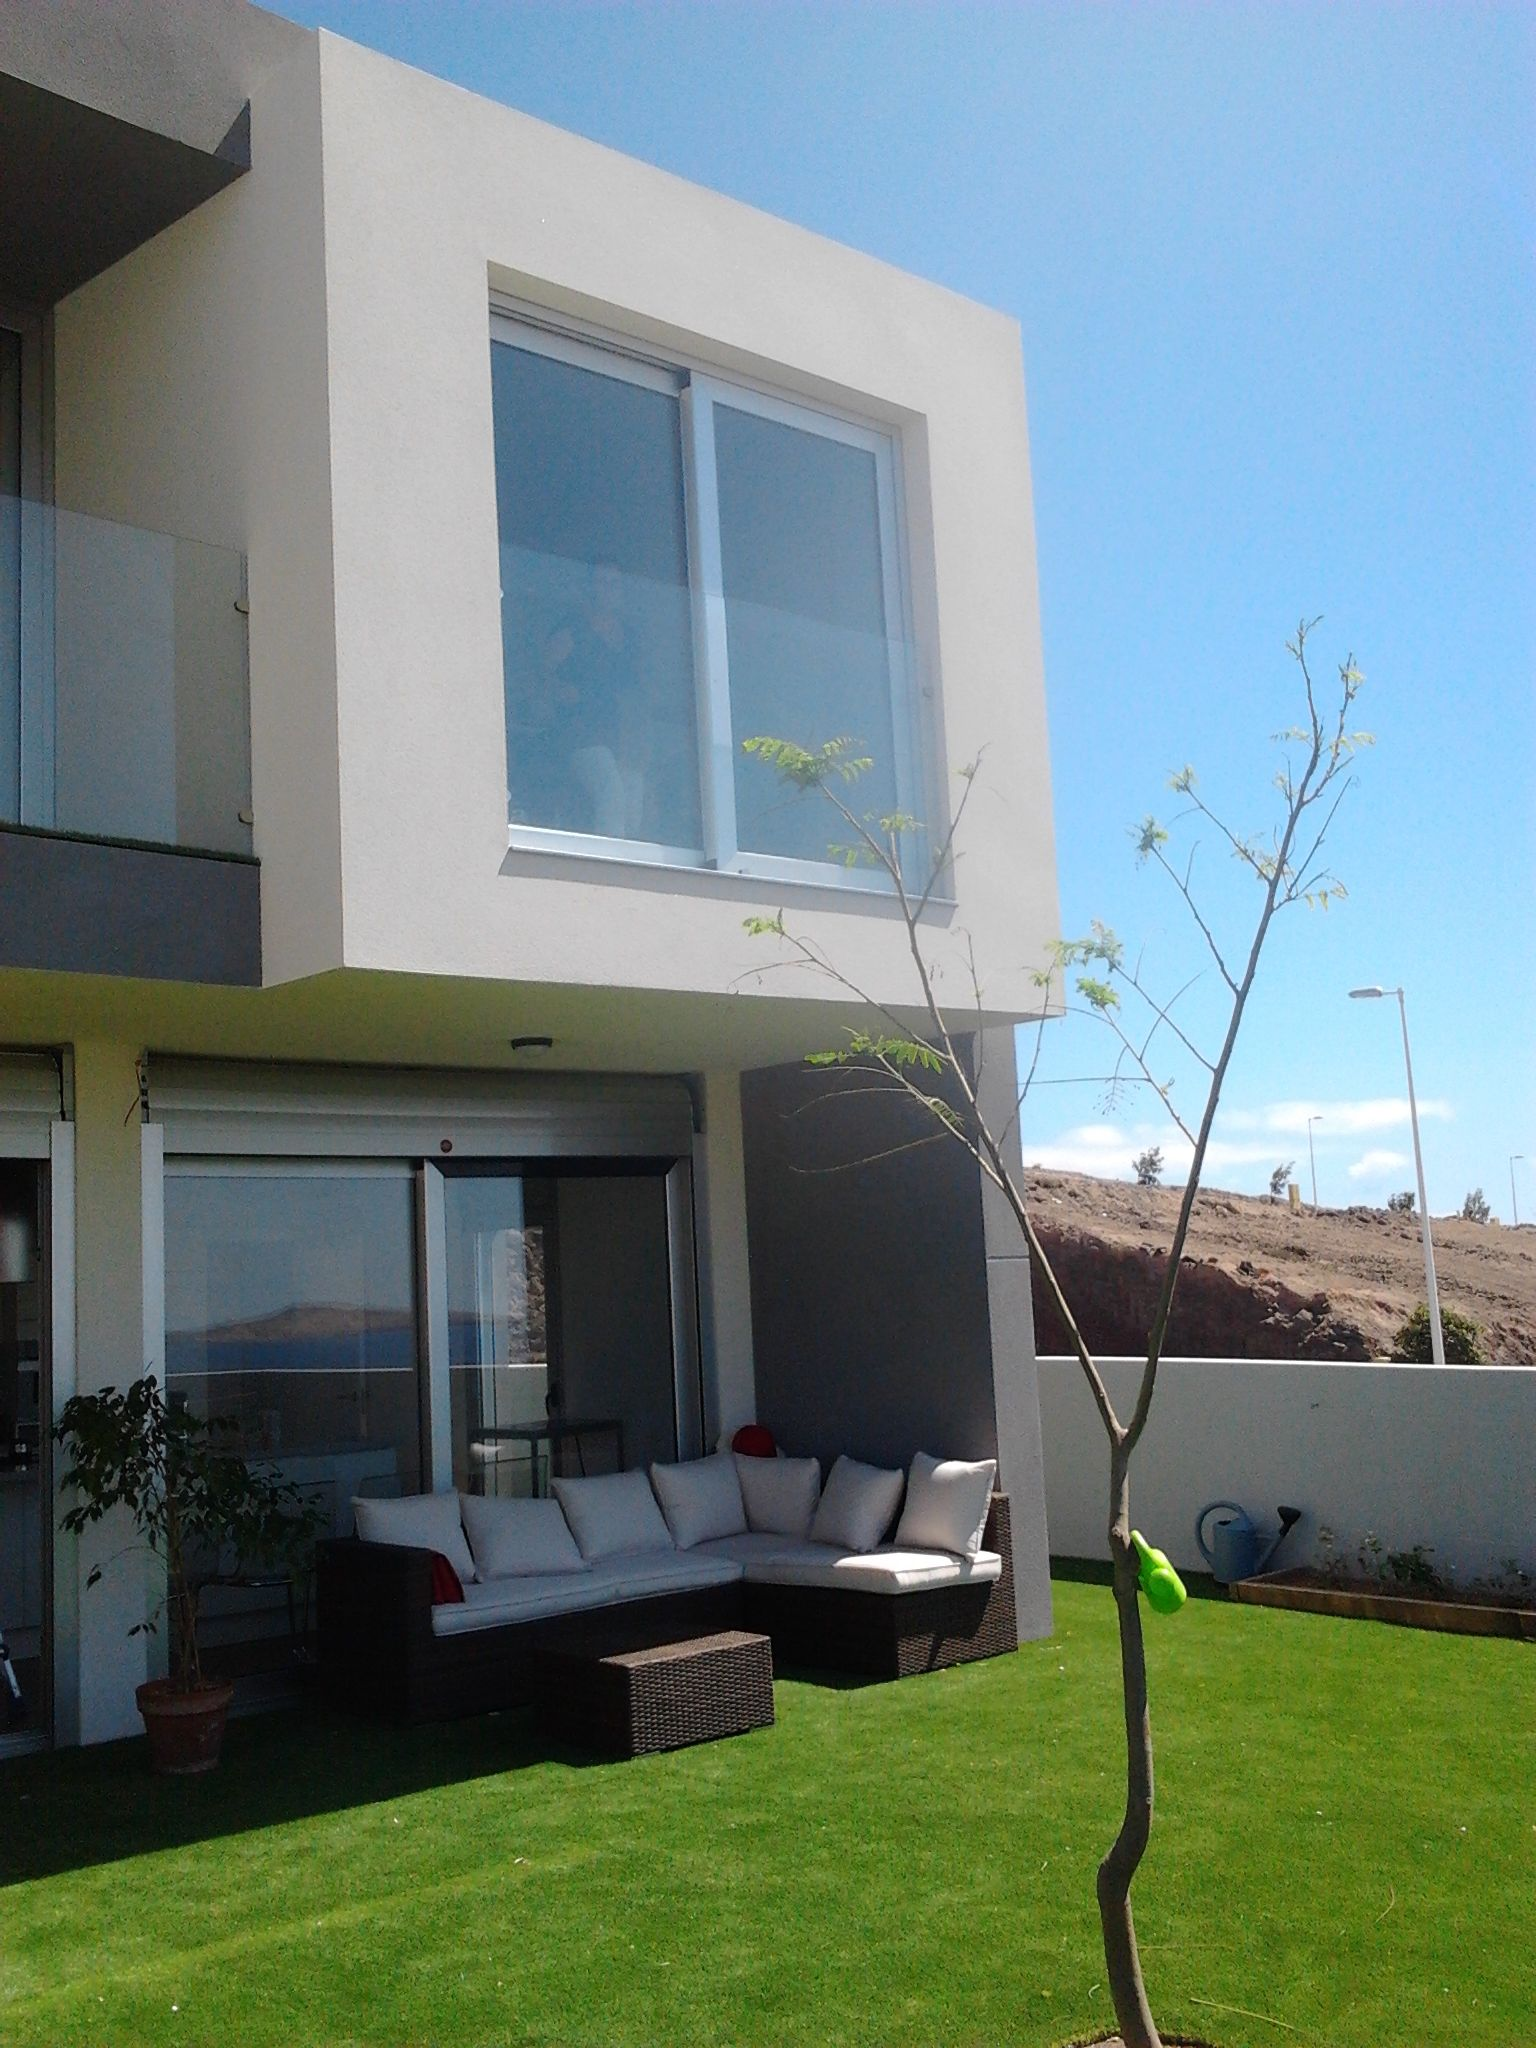 Ideas De Exterior Patio Estilo Moderno Color Blanco Gris